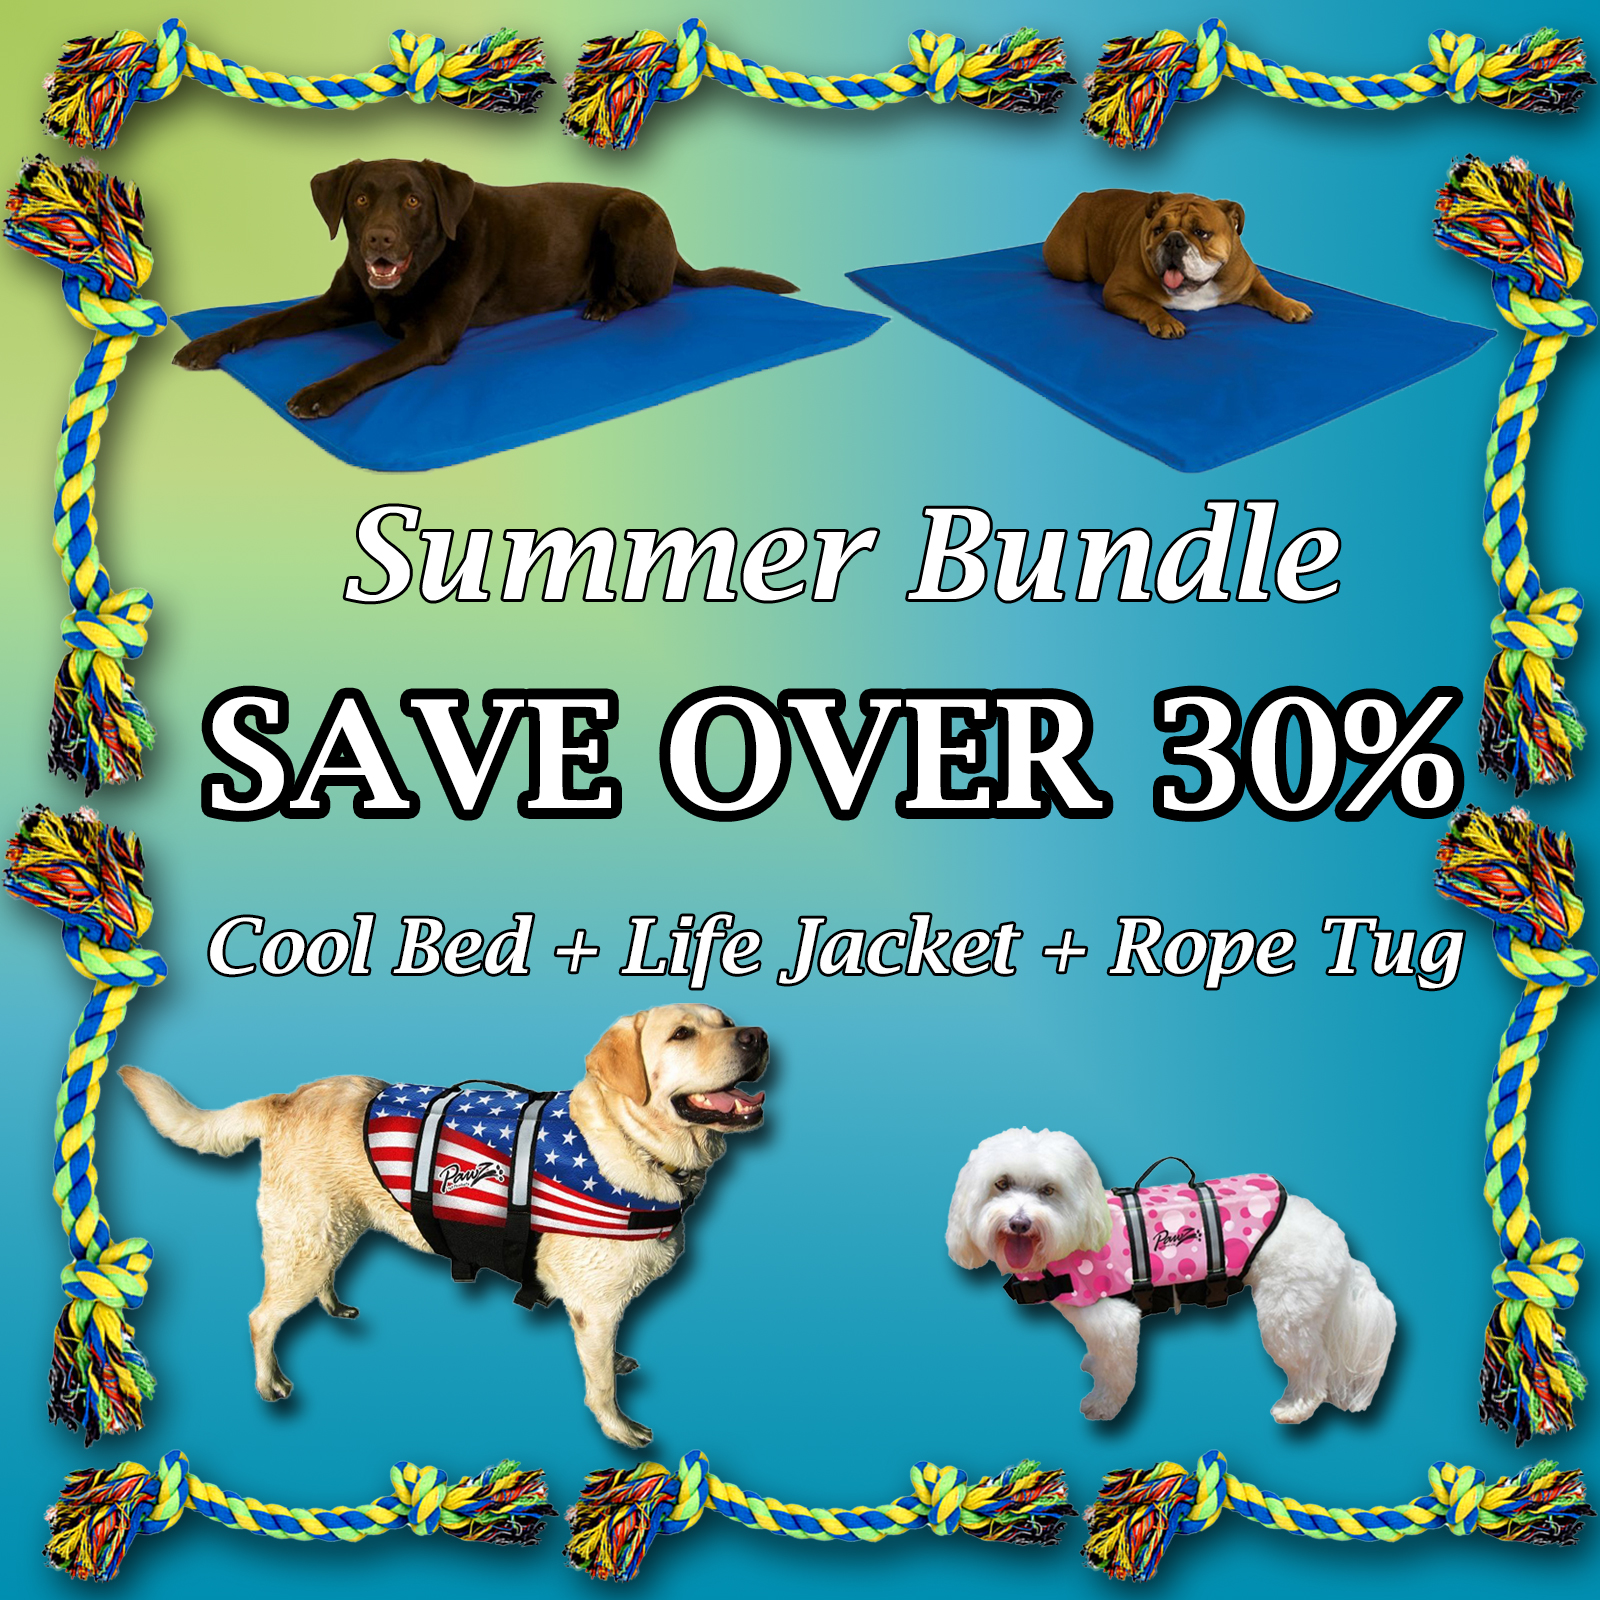 summer-bundle-flyer-1-003-.jpg